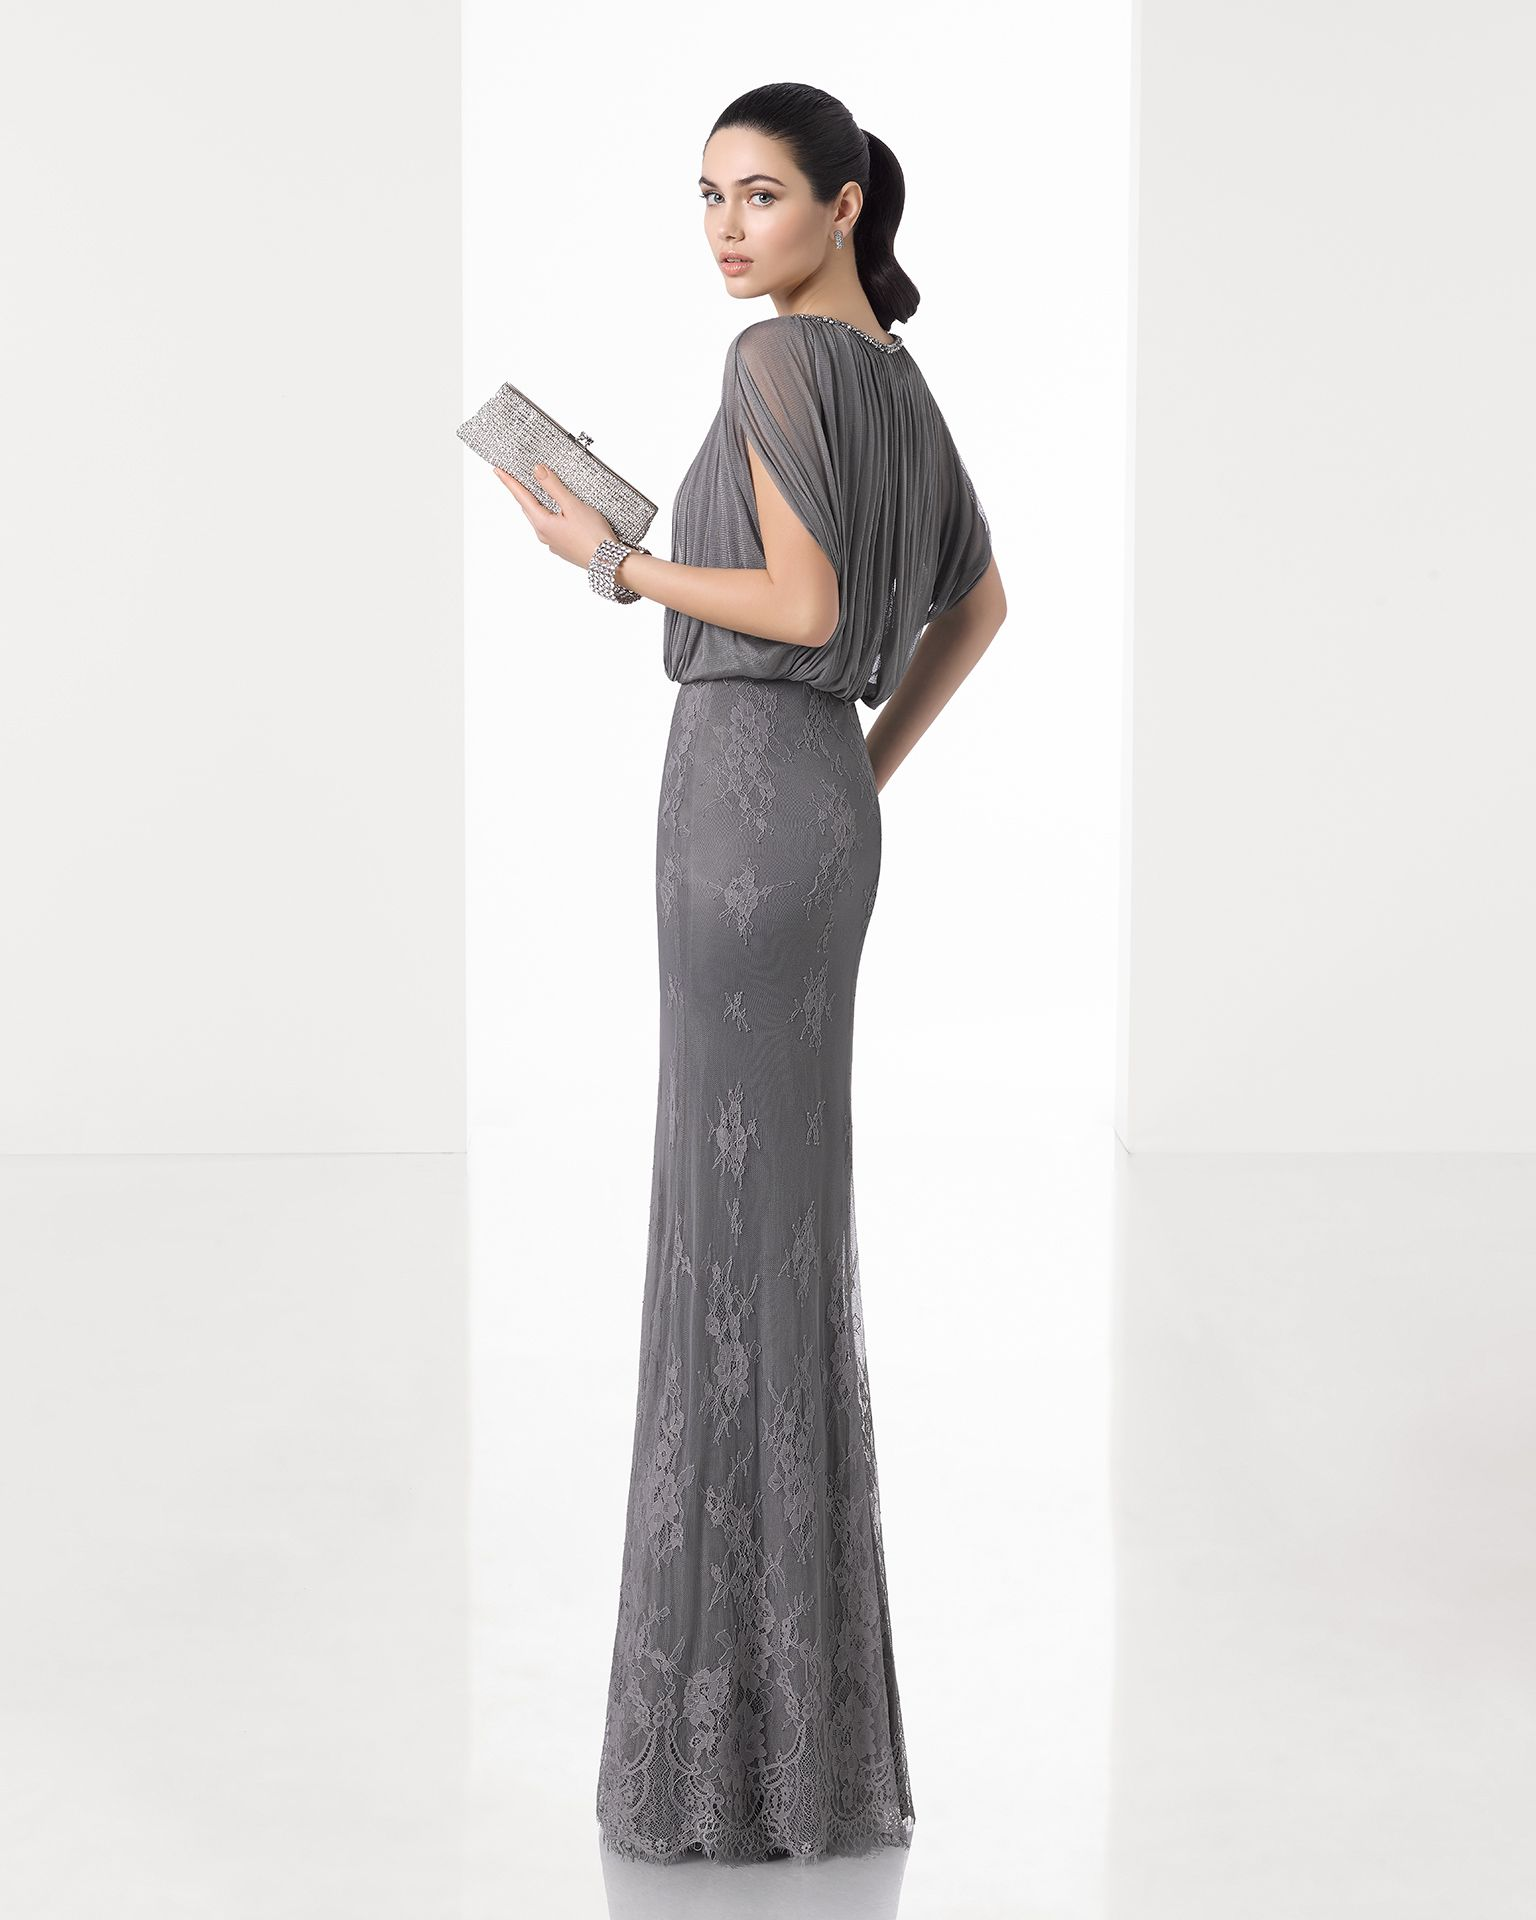 T column dress shoulder sleeve and lace skirt